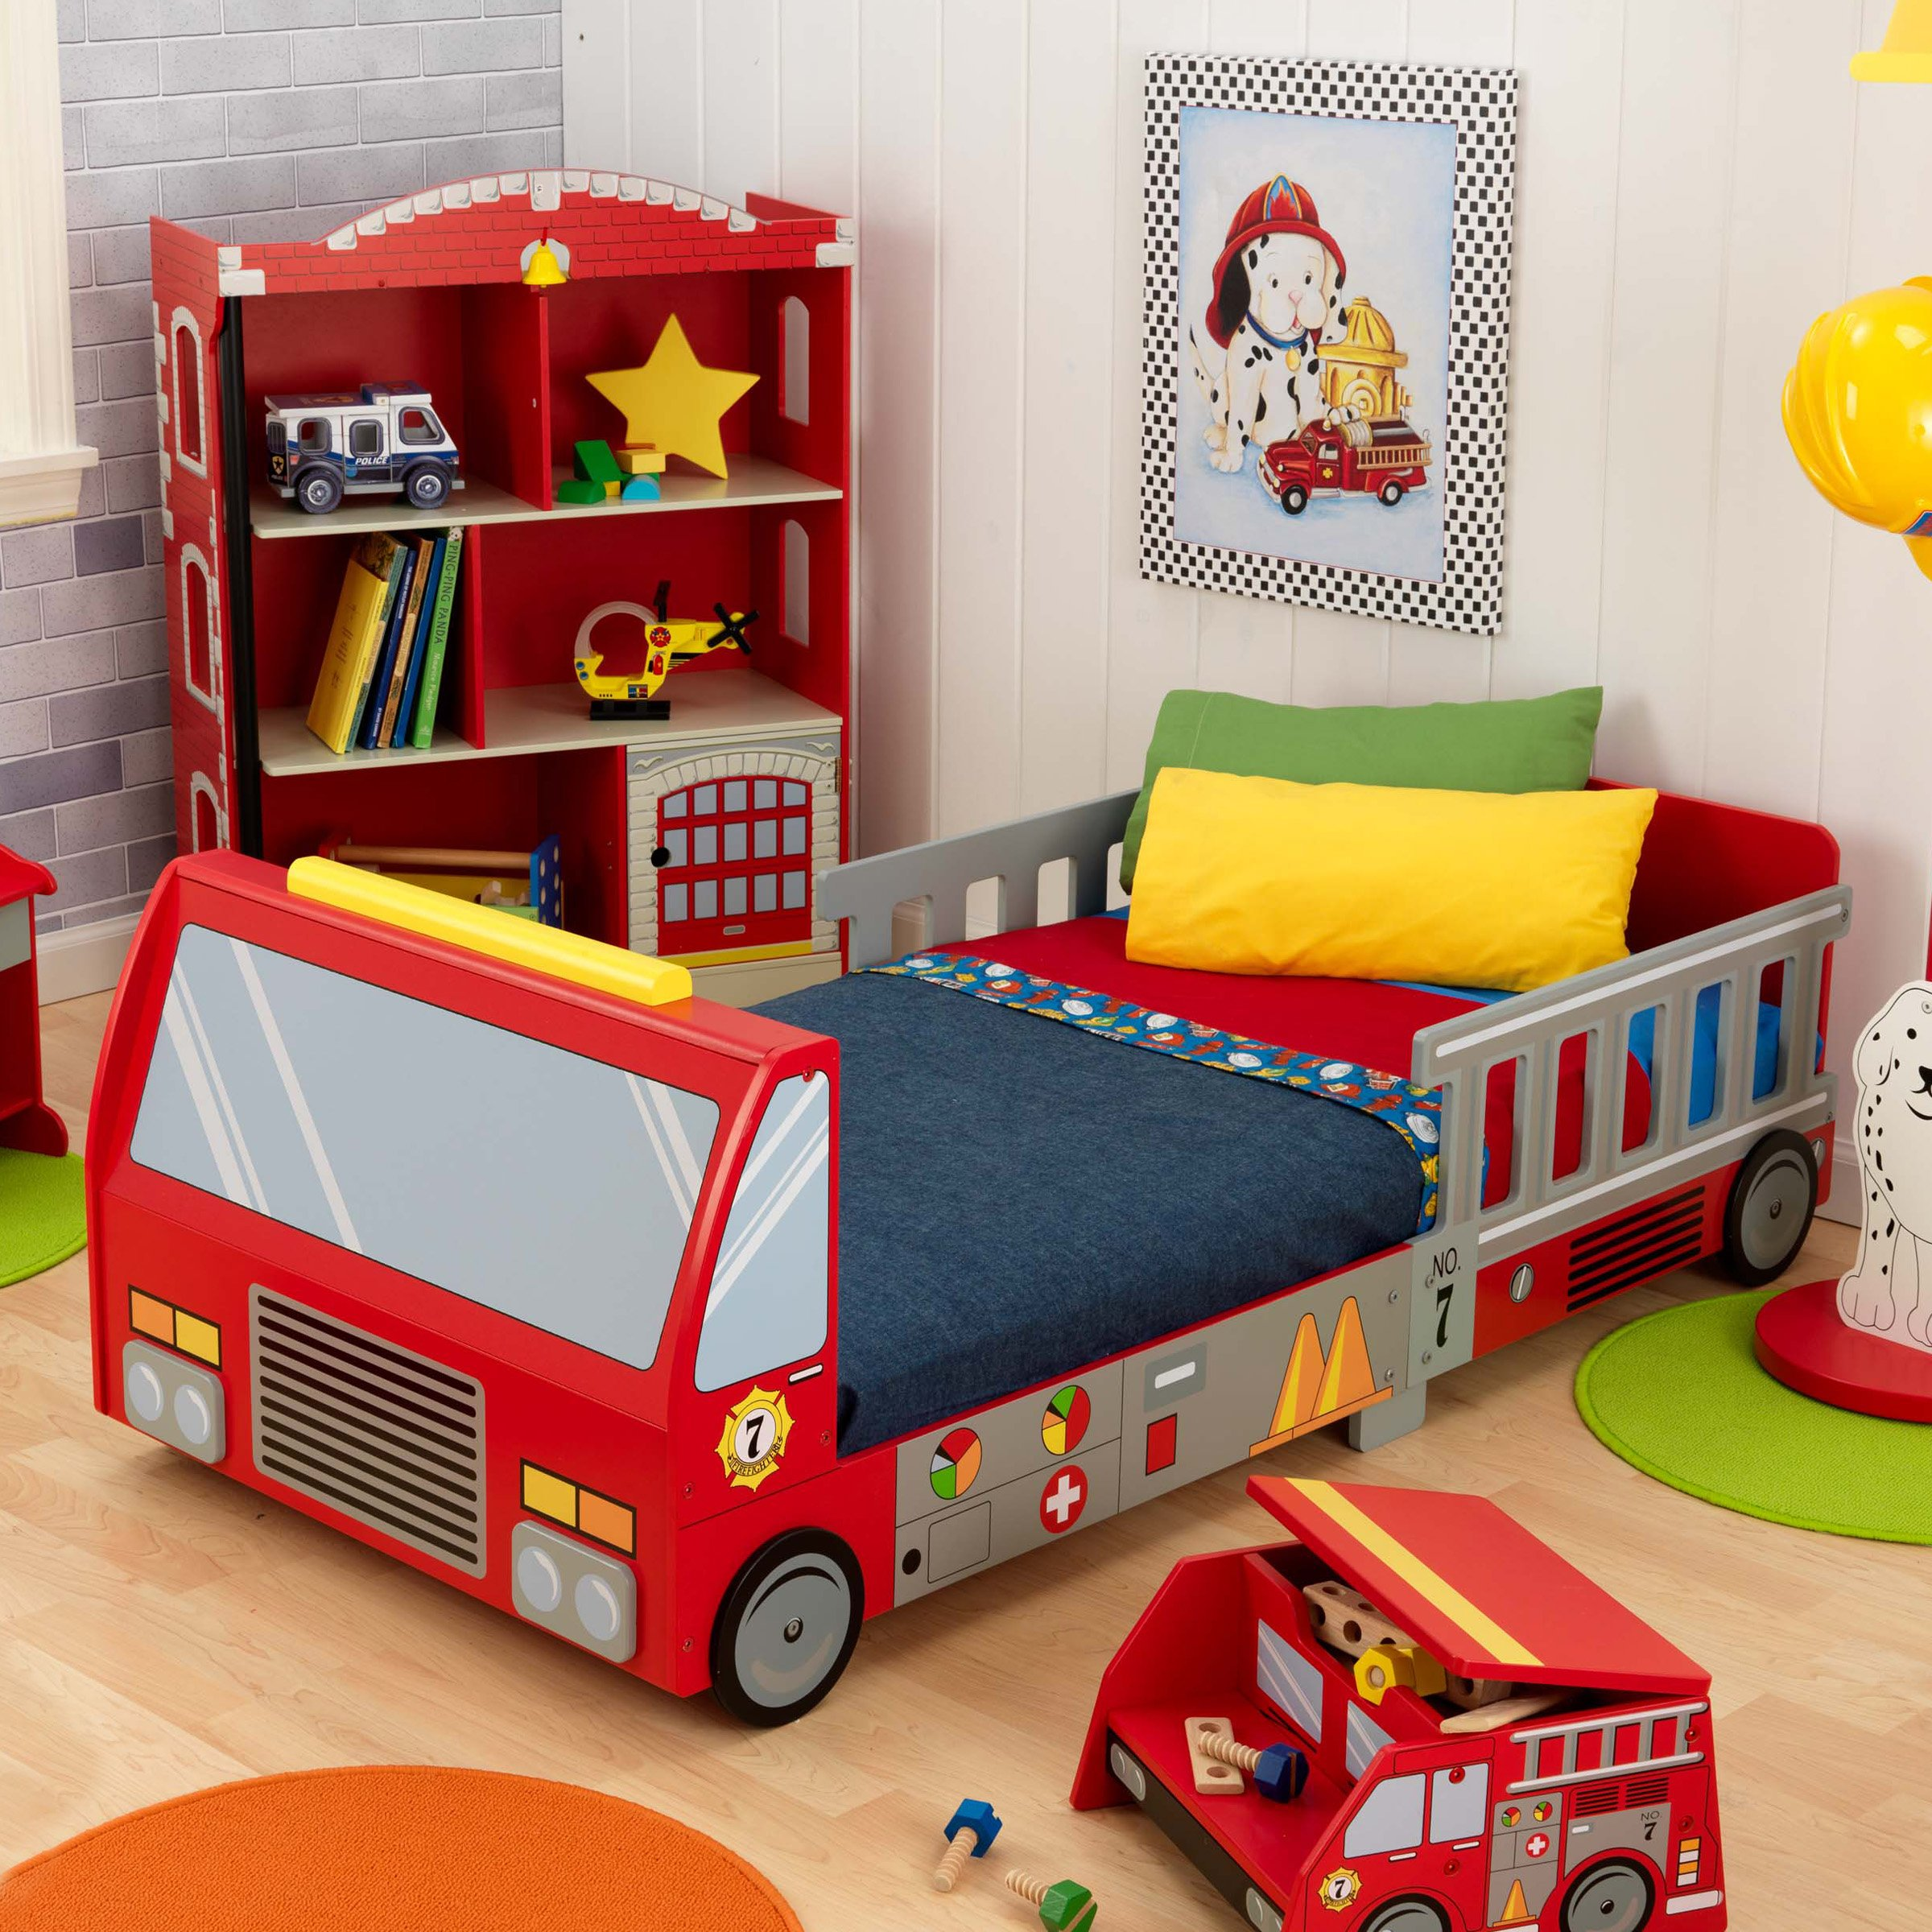 Kids Bedroom Furniture For Boys Anime Bedroom Decor Older Boys Bedroom Wallpaper Bedroom Design Ideas Red: صور سرير بنات مودرن بالوان بناتي روعة وجديدة